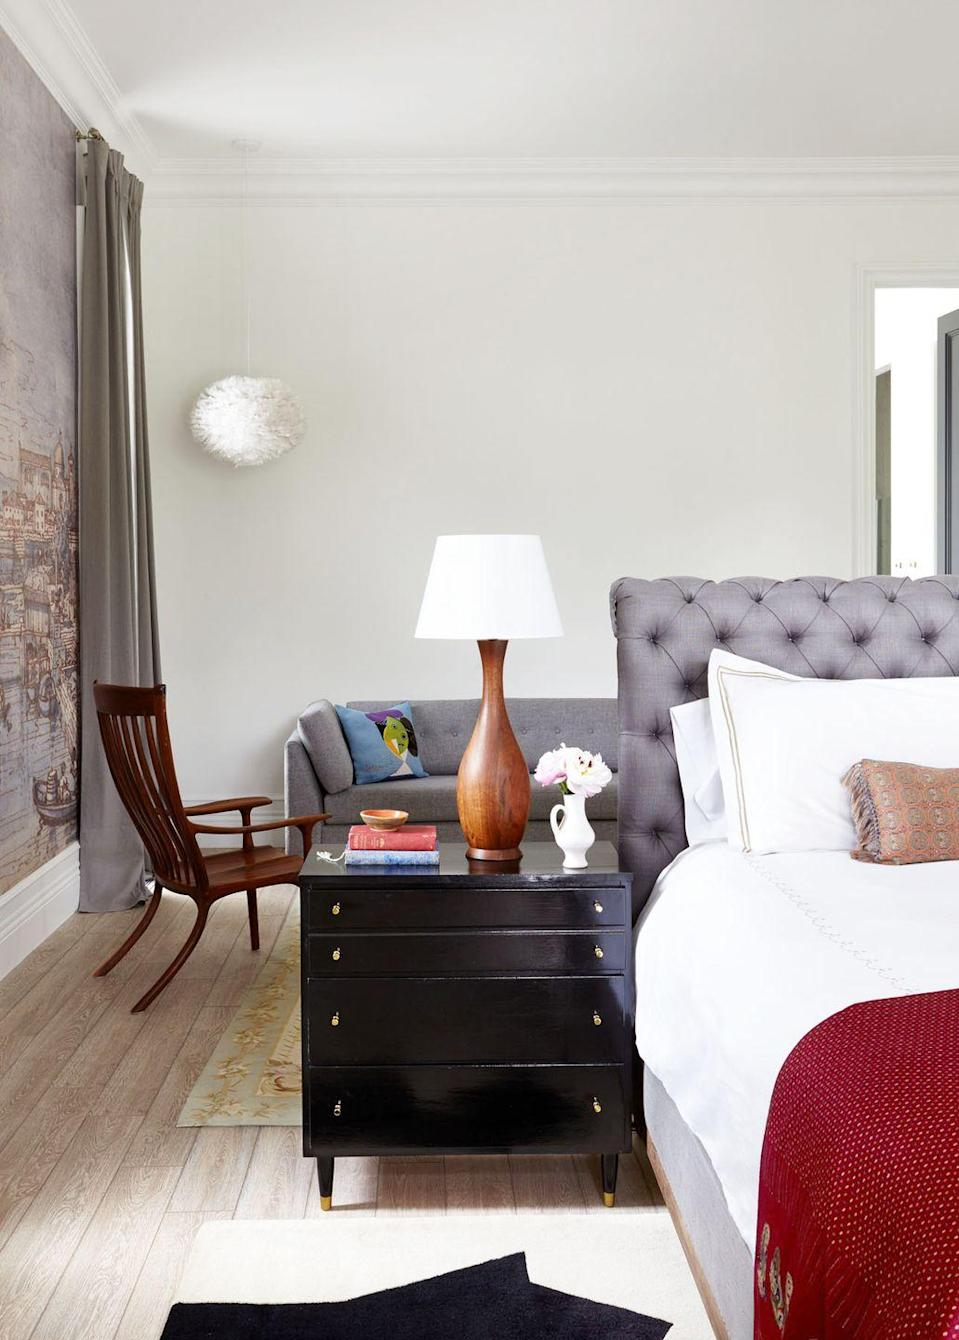 "<p>Challenge expected layouts and experiment with new ones—you may find that something less cookie-cutter works better for your space. For example, in this bedroom by <a href=""http://www.rajirm.com/"" rel=""nofollow noopener"" target=""_blank"" data-ylk=""slk:Raji Radhakrishnan"" class=""link rapid-noclick-resp"">Raji Radhakrishnan</a>, the floating bed and bedside table help separate the space into separate zones, carving out a bonus sitting area and doubling use-case. </p>"